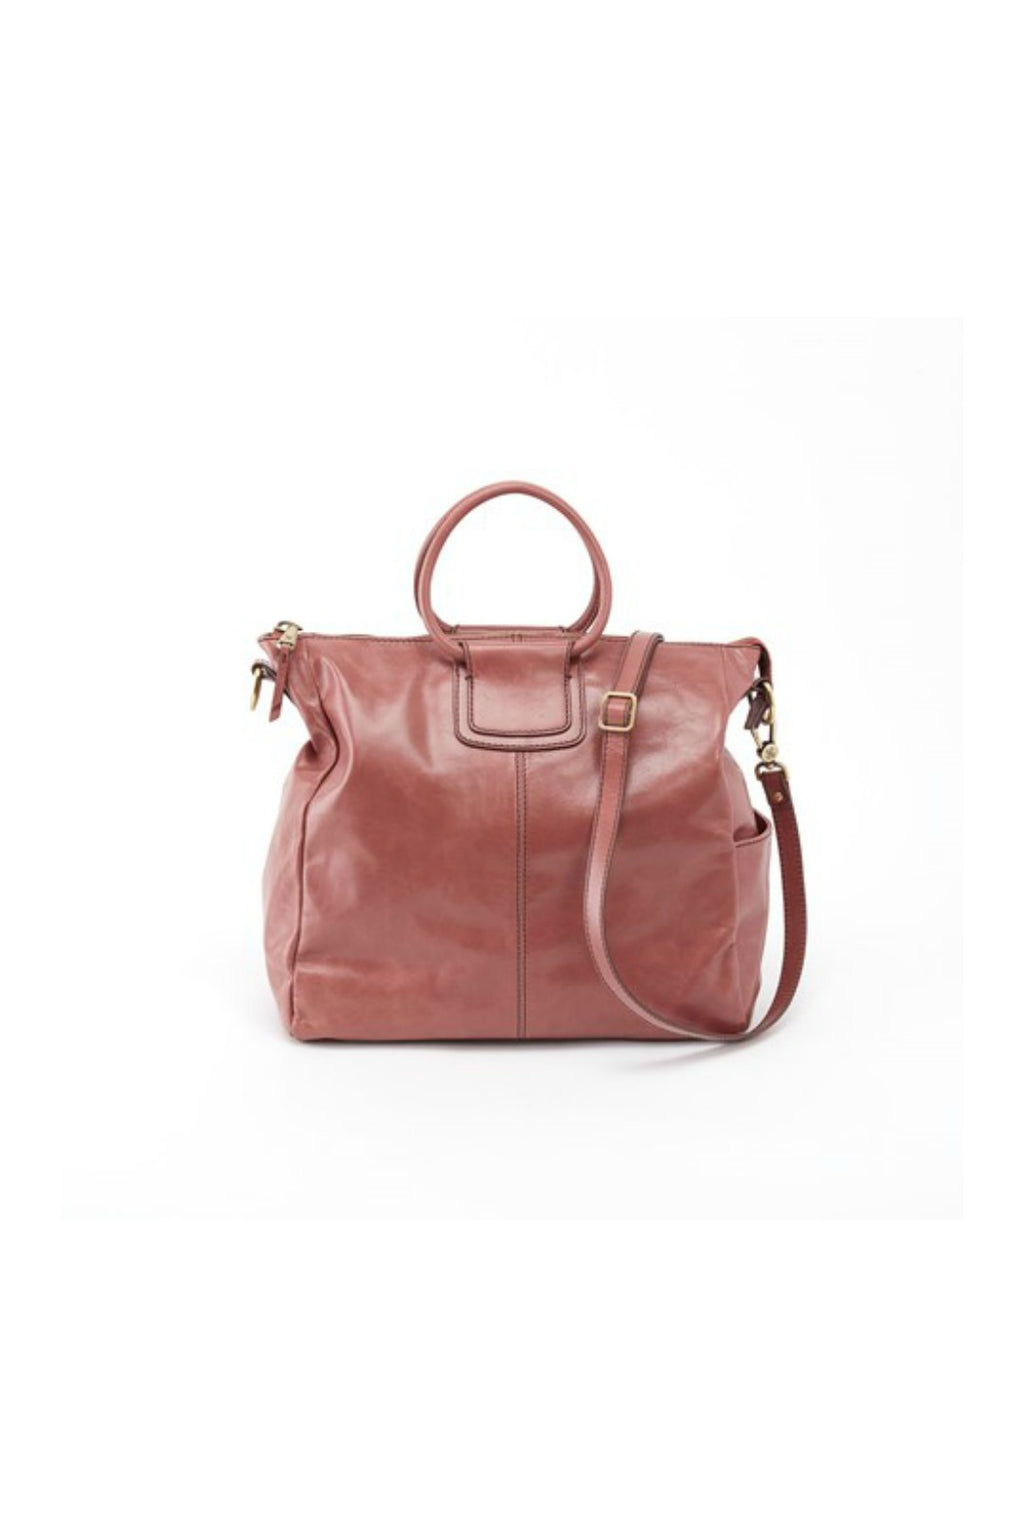 Hobo Sheila Travel Bag - Burnished Rose 30% OFF with code: HOBOSALE